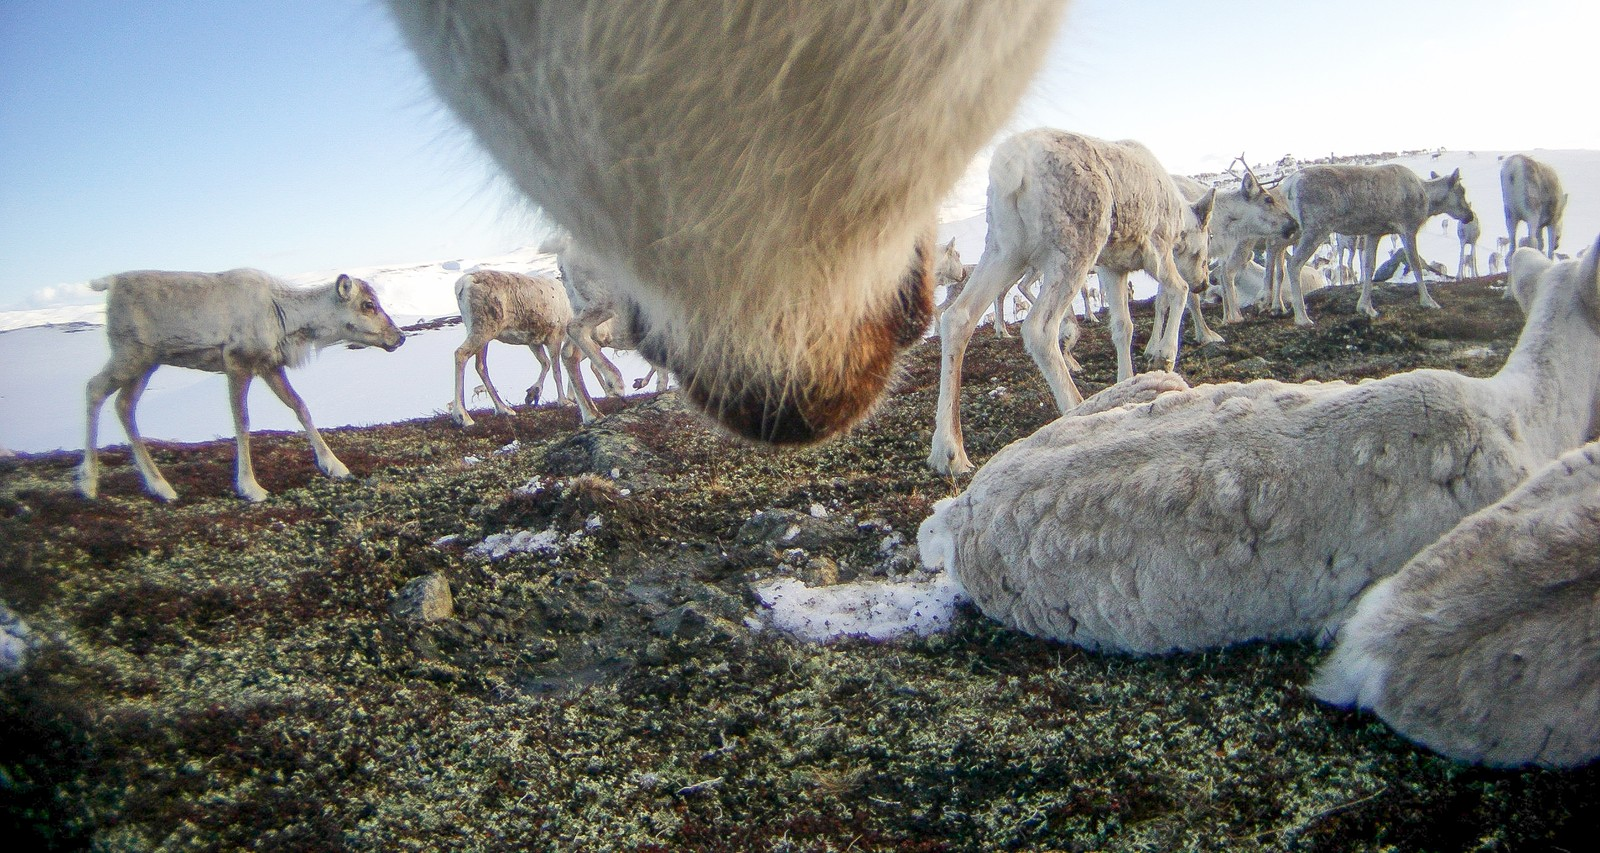 A parasite — Hypodermatinae — lays its eggs in the fur of the reindeer, and after a few days a larvae is born. The larvae penetrates the skin of the reindeer and lives of the reindeer's blood and other fluids. The parasites can be seen as bumps on the reindeer, like in this picture.